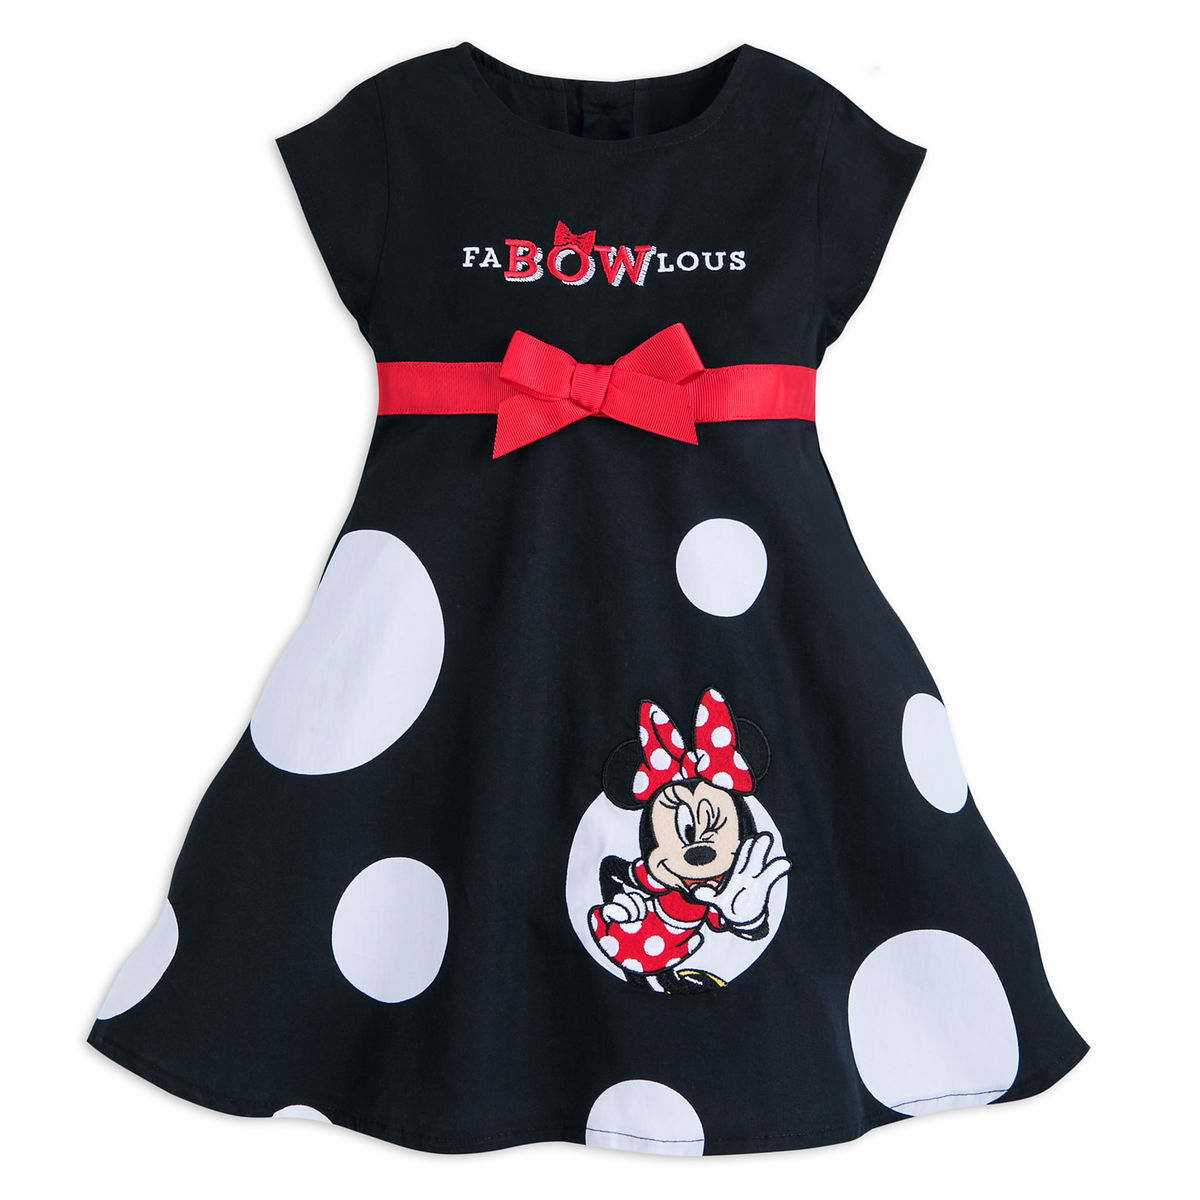 07a8a8b51 Minnie Mouse   FaBOWlous   Woven Dress for Baby